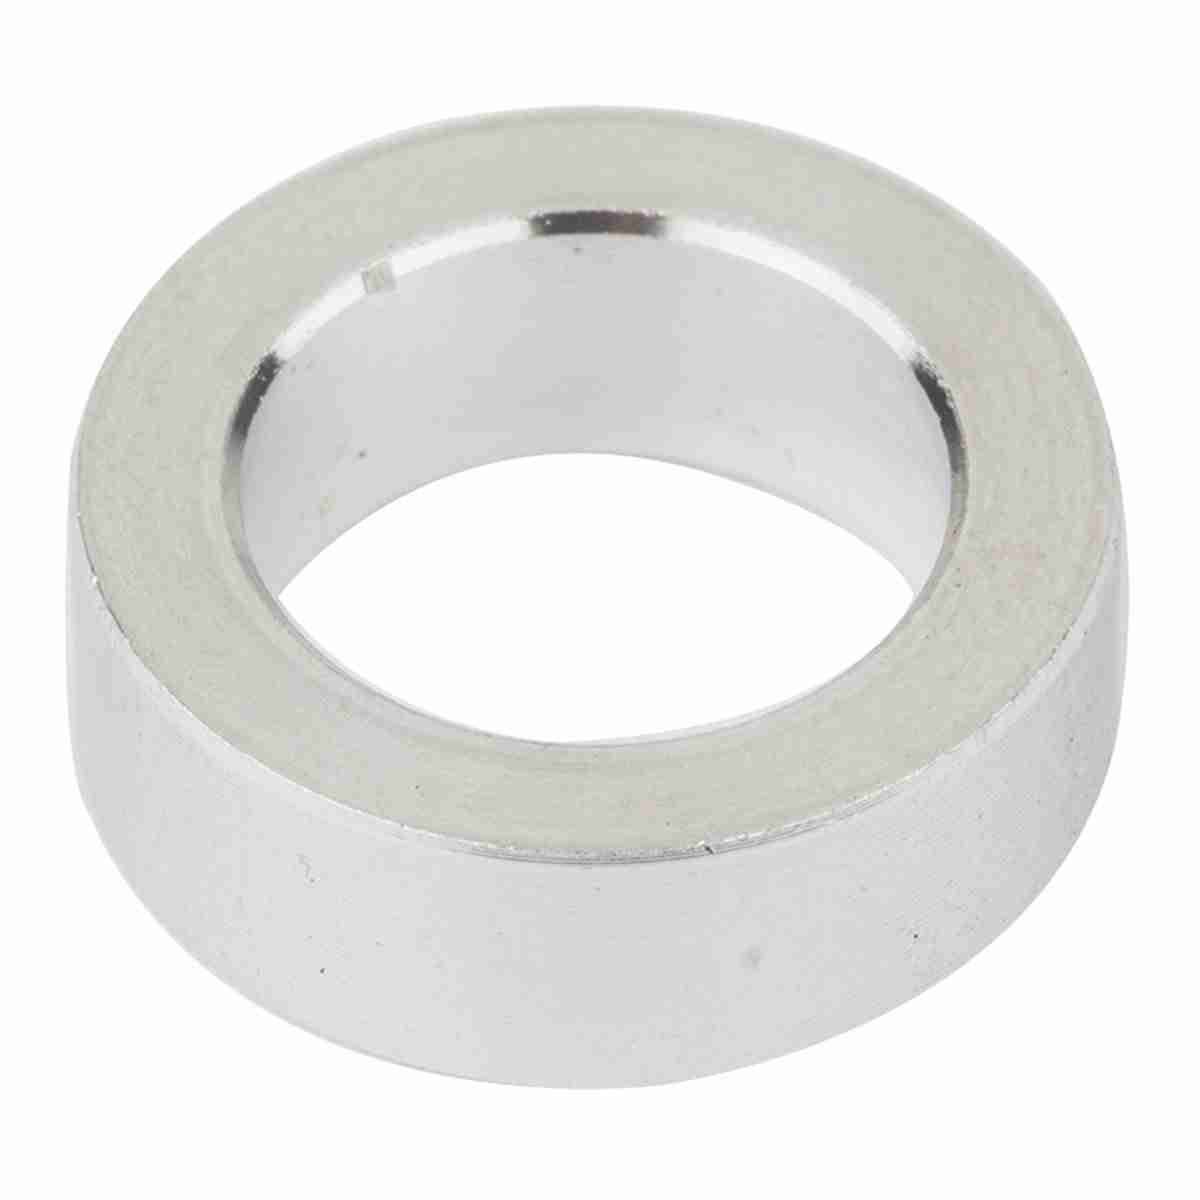 Sunlite Bgof10 Hub Axle Spacer - Silver, 5mm x 15mm x 10mm